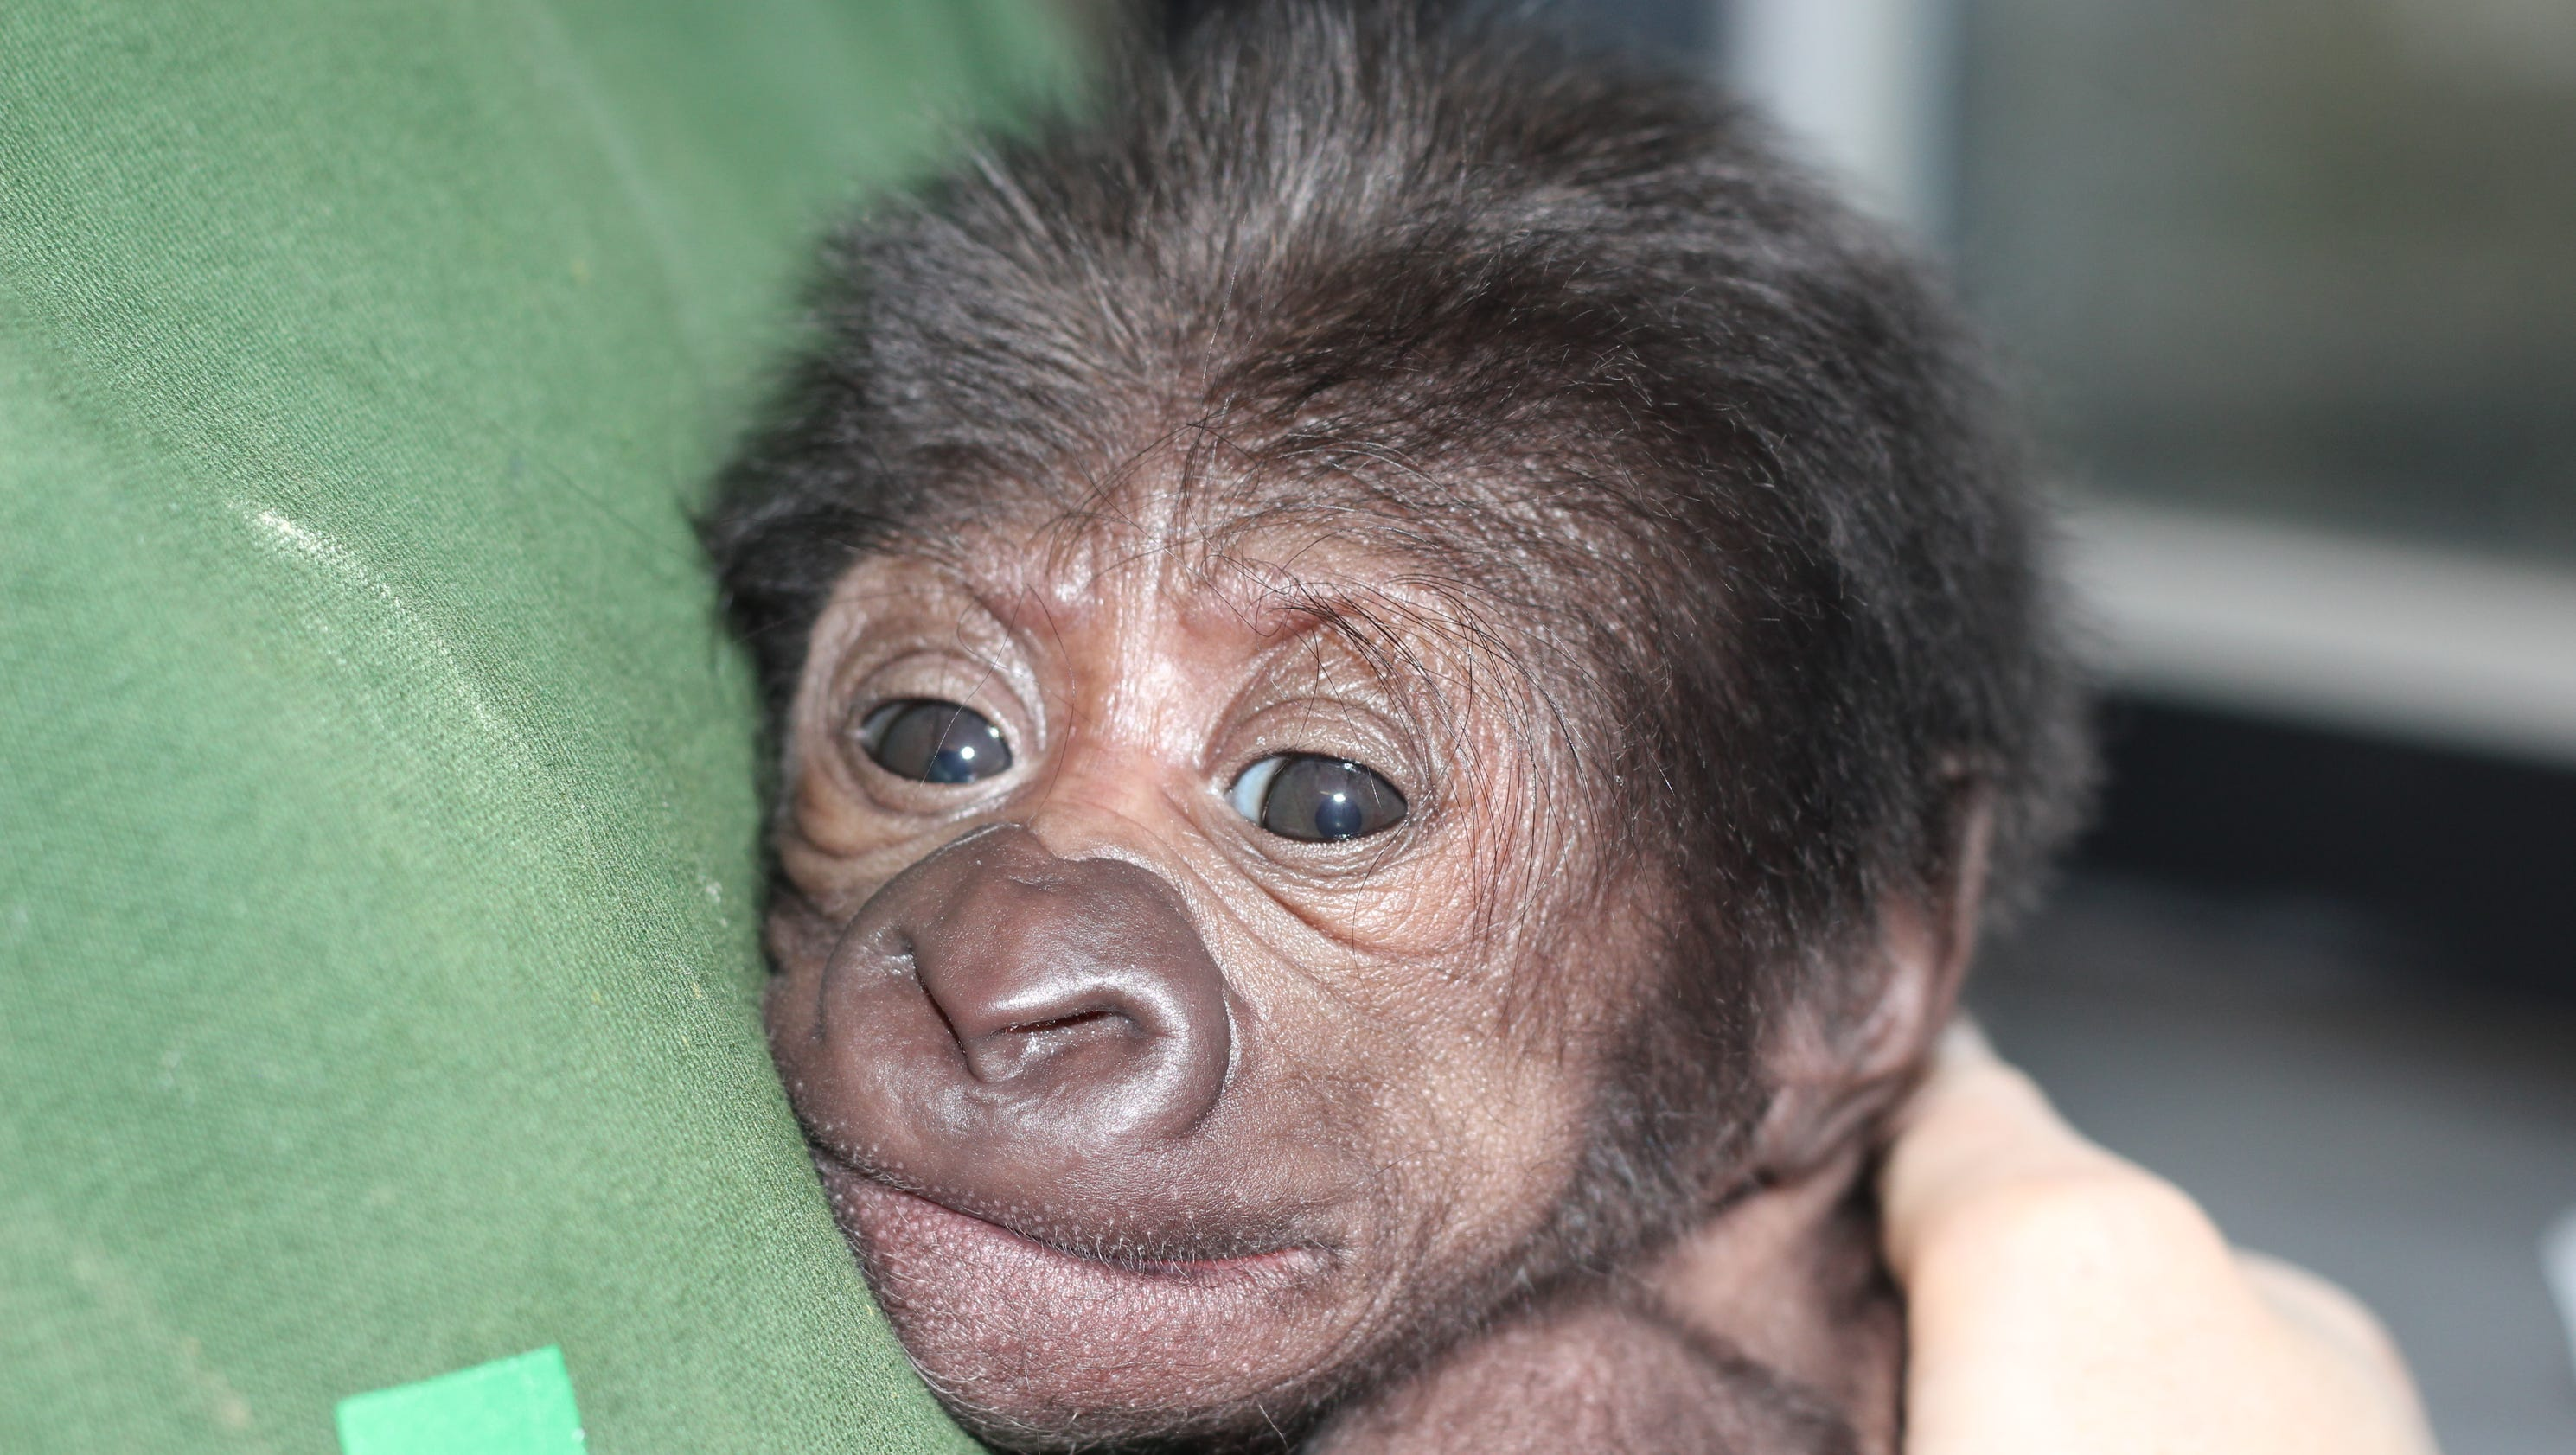 Baby gorilla born by 'rare' C-section in UK